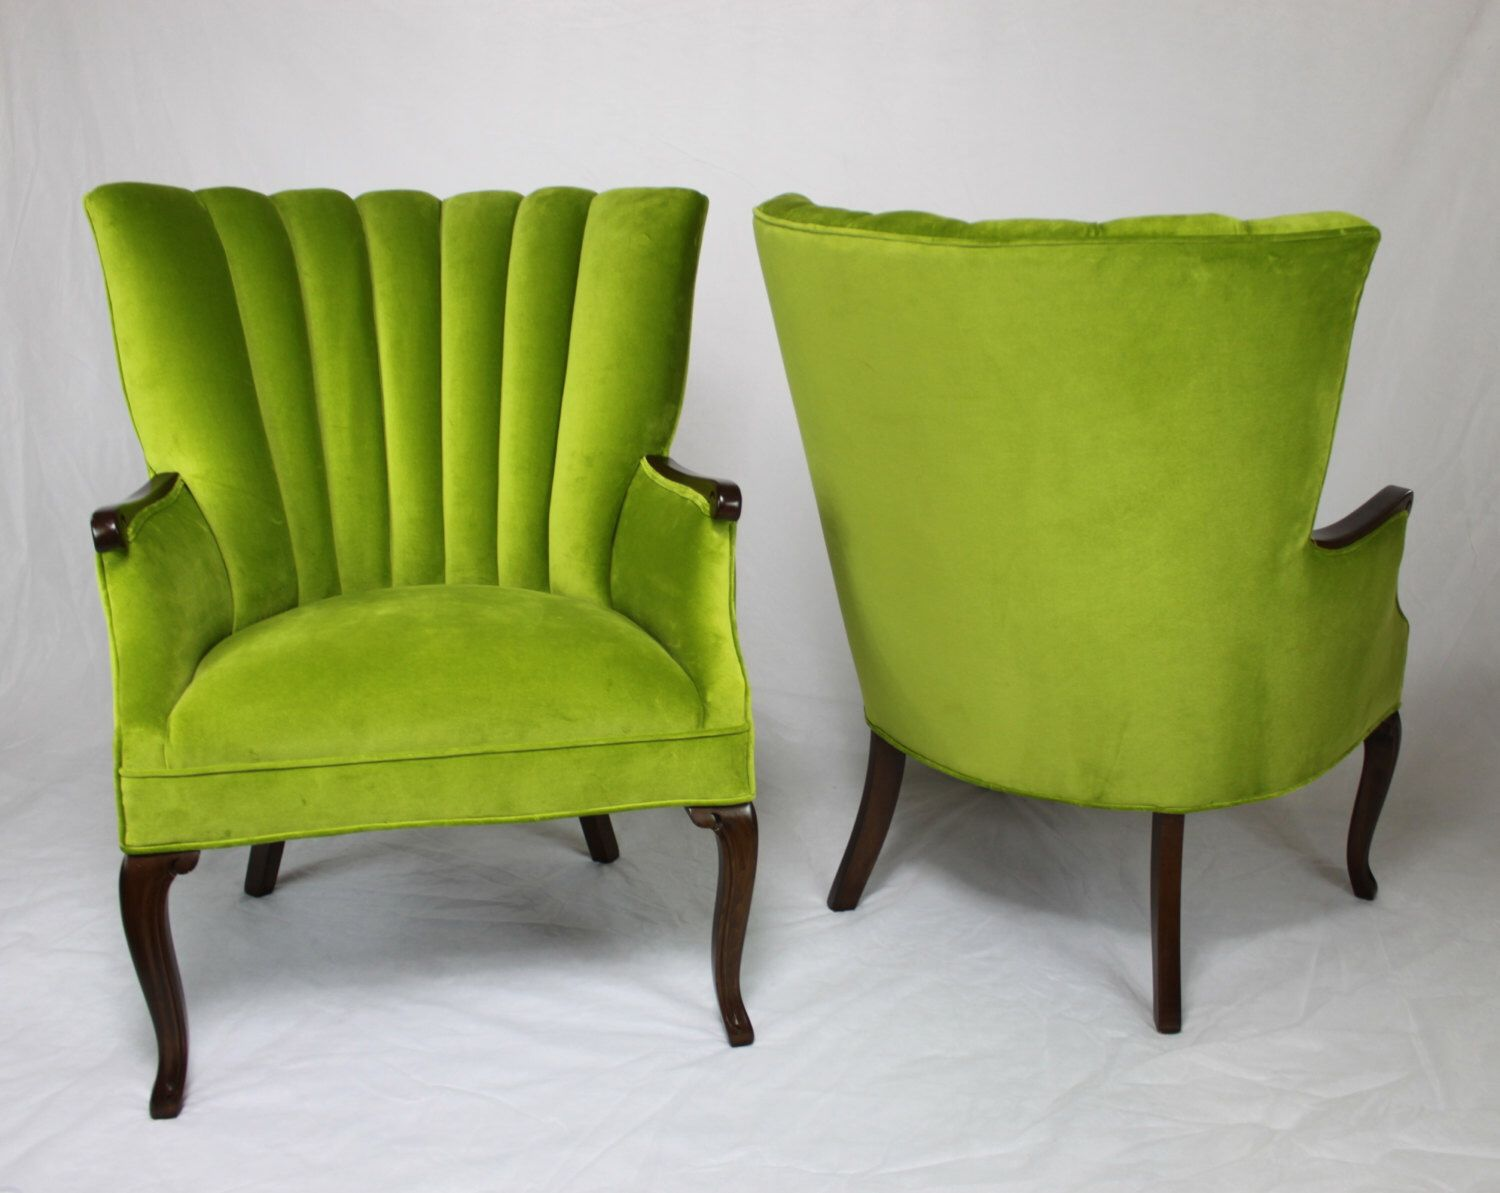 Delicieux Apple Green Channel Back Wing Back Chairs Vintage Chairs With New  Upholstery And Stain Element 20 Designs